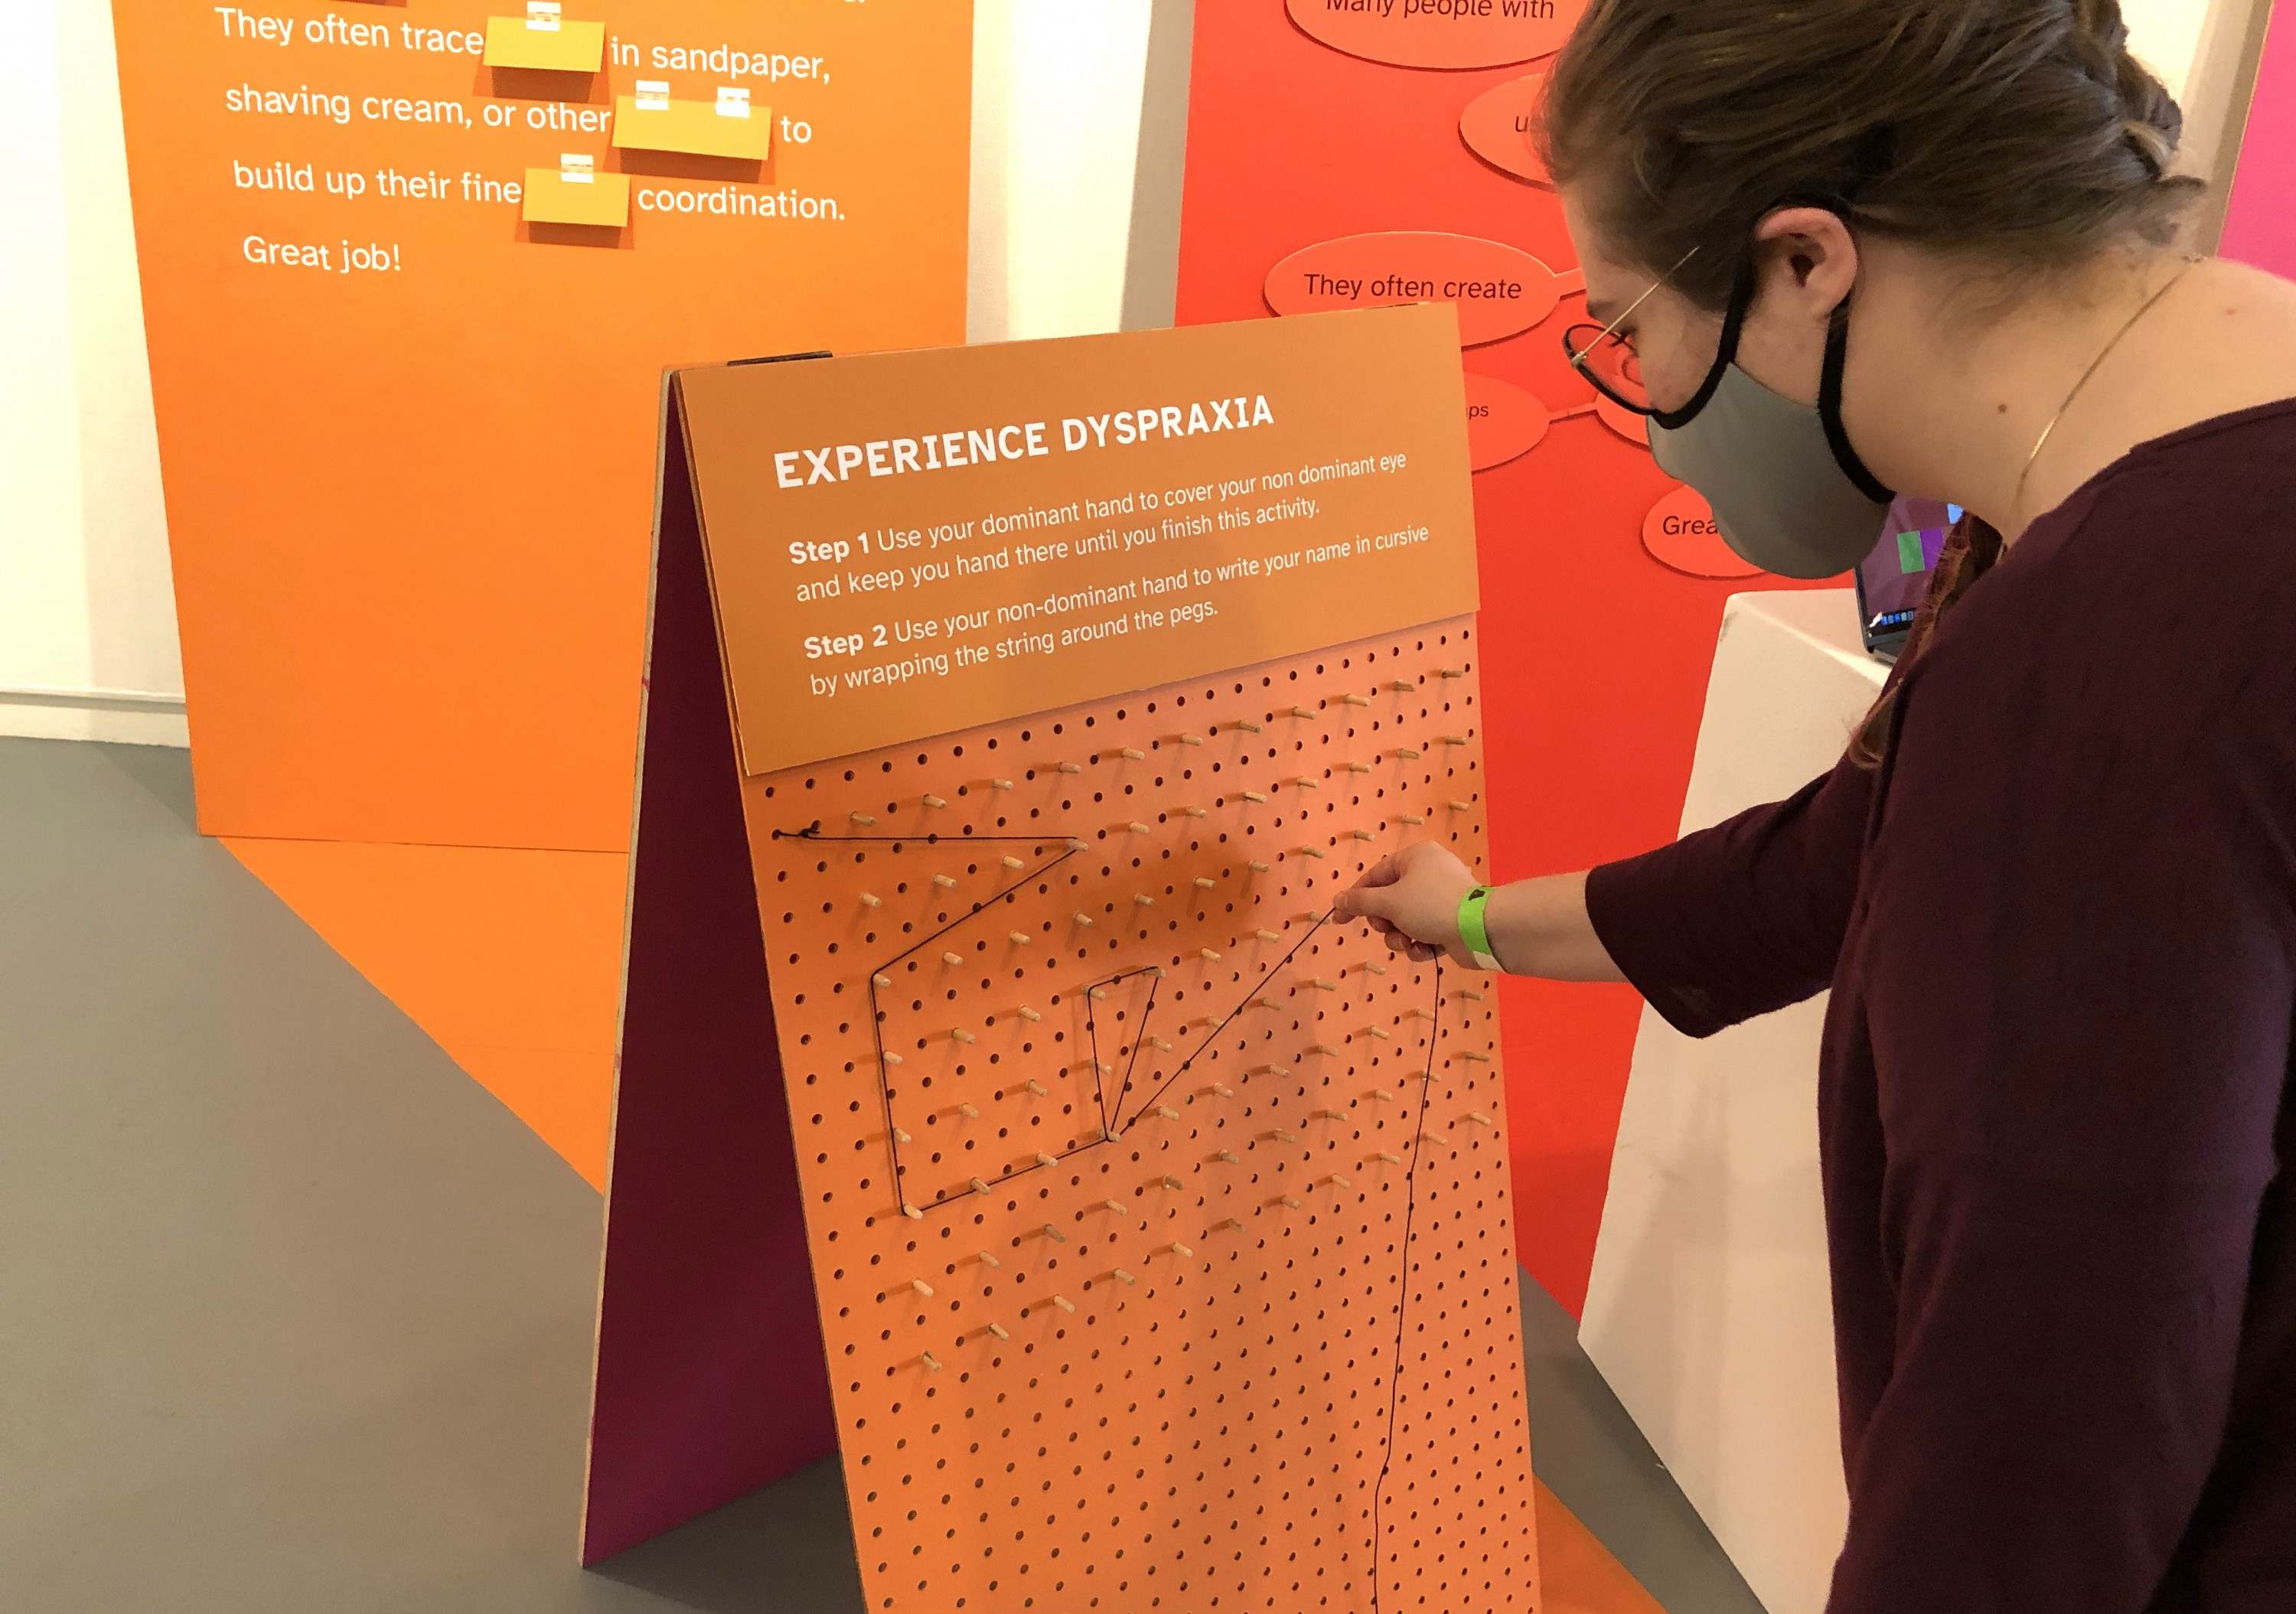 Visitors must struggle to write their name in string with their non dominant hand whyle covering one eye to simulate fine motor coordination issues that those with Dyspraxia often have.